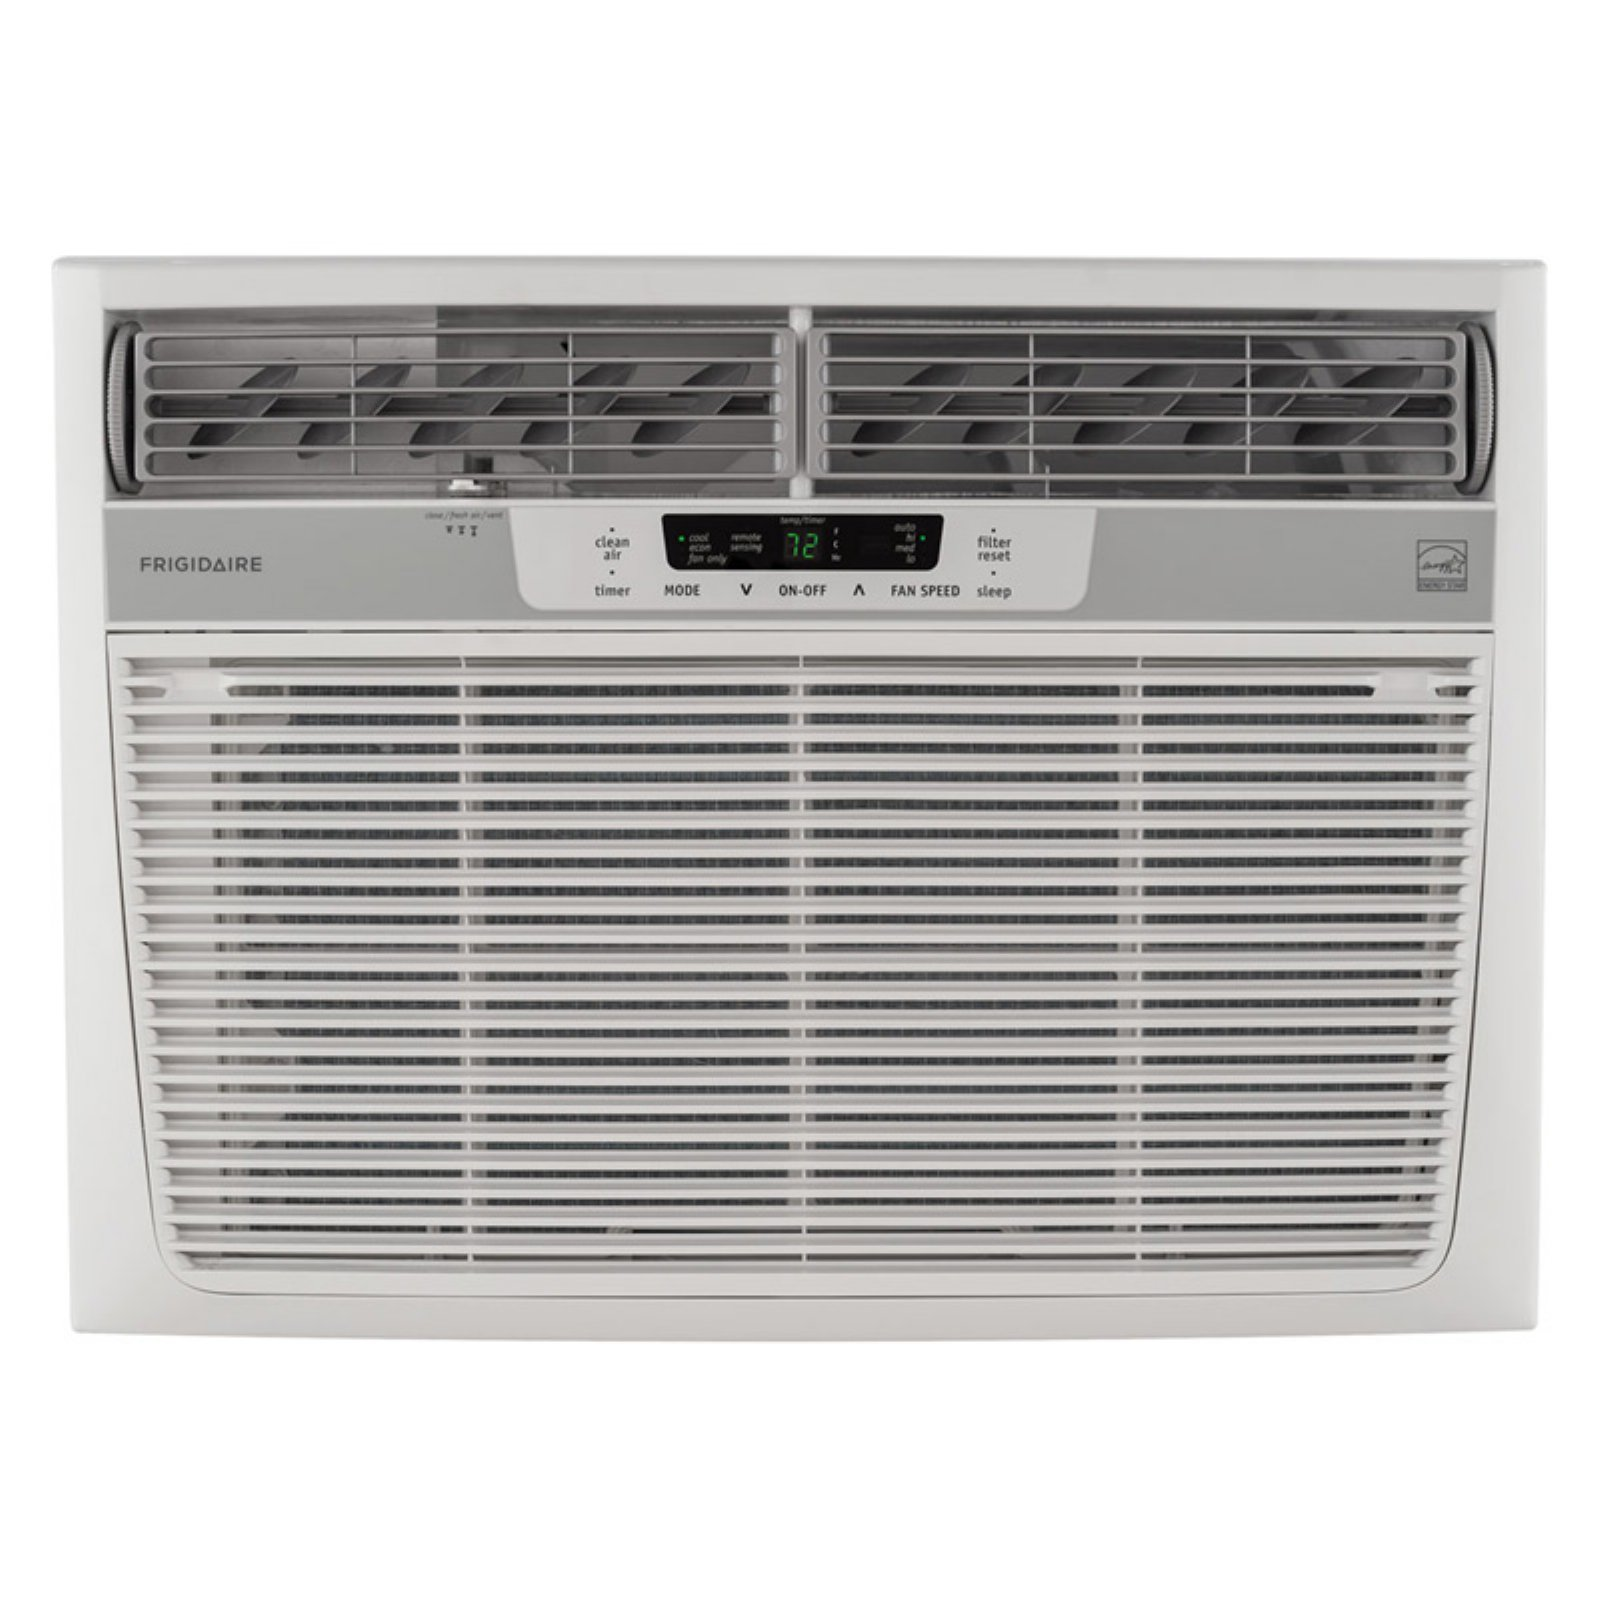 Frigidaire FFRE1533S1 15,000 BTU 115V Window-Mounted Median Air Conditioner with Temperature Sensing Remote Control